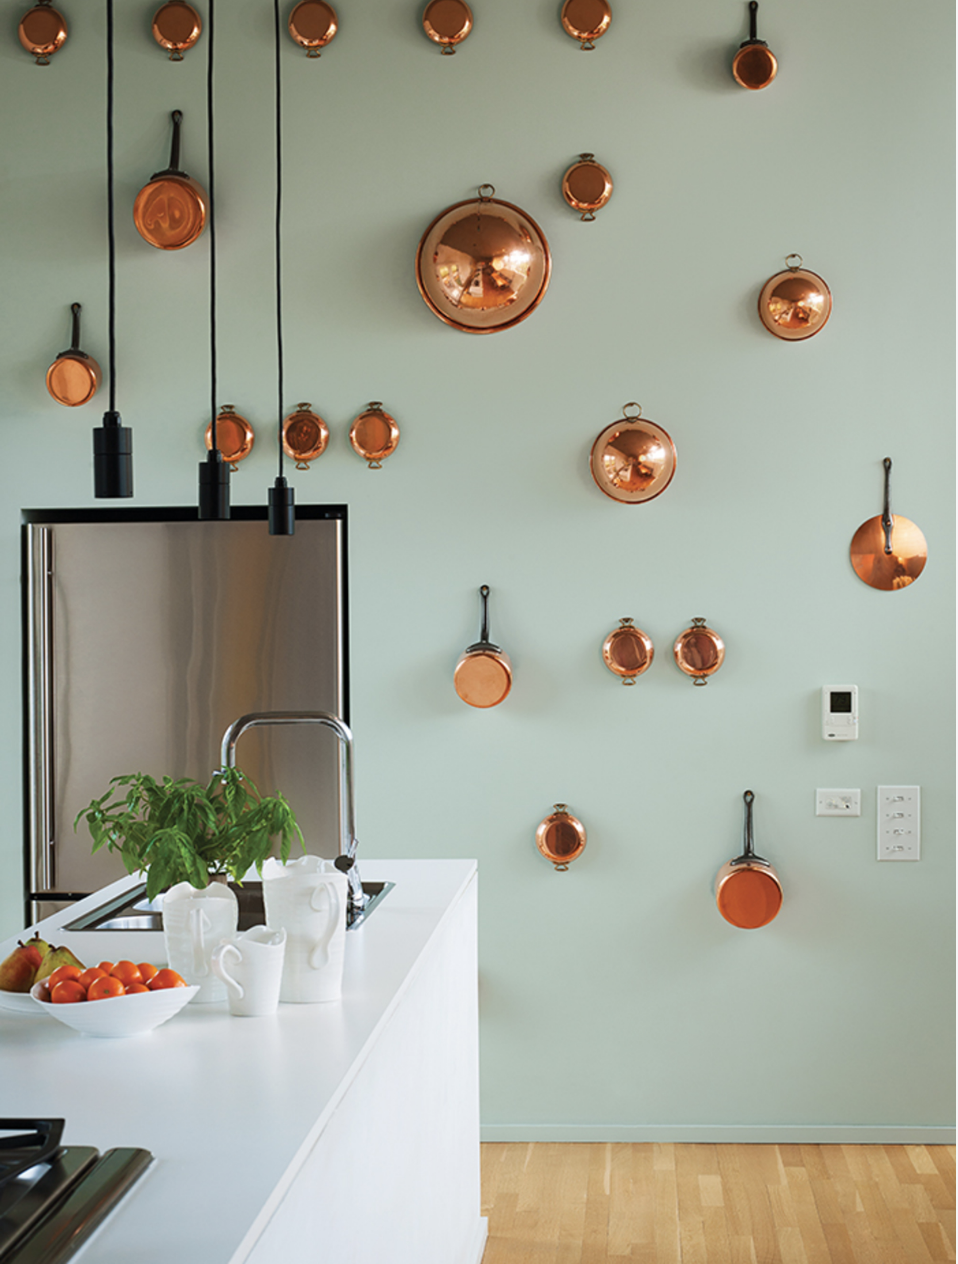 A wall of artfully arranged copper pots with a contrasting paint color makes a bold statement in a small space.  Photo 11 of 11 in 10 Effective Tips For Making the Most Out of Small Space Interiors